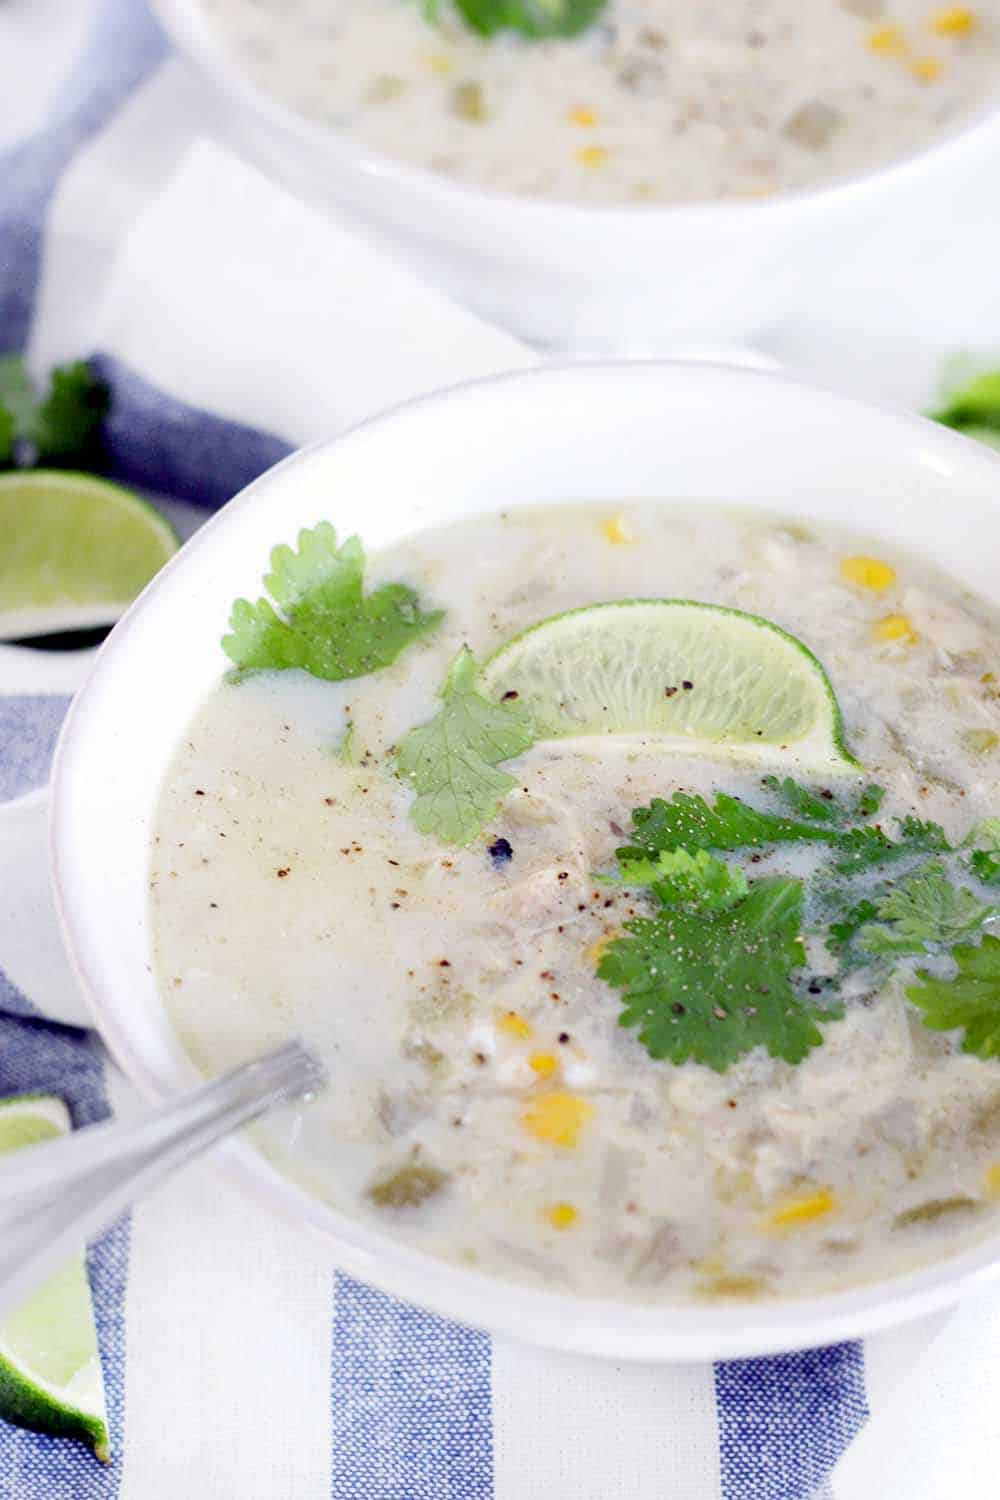 This slow cooker white chicken chili is cozy, gluten free, and smells AMAZING while it cooks. Plus, you can easily make it dairy and grain free!